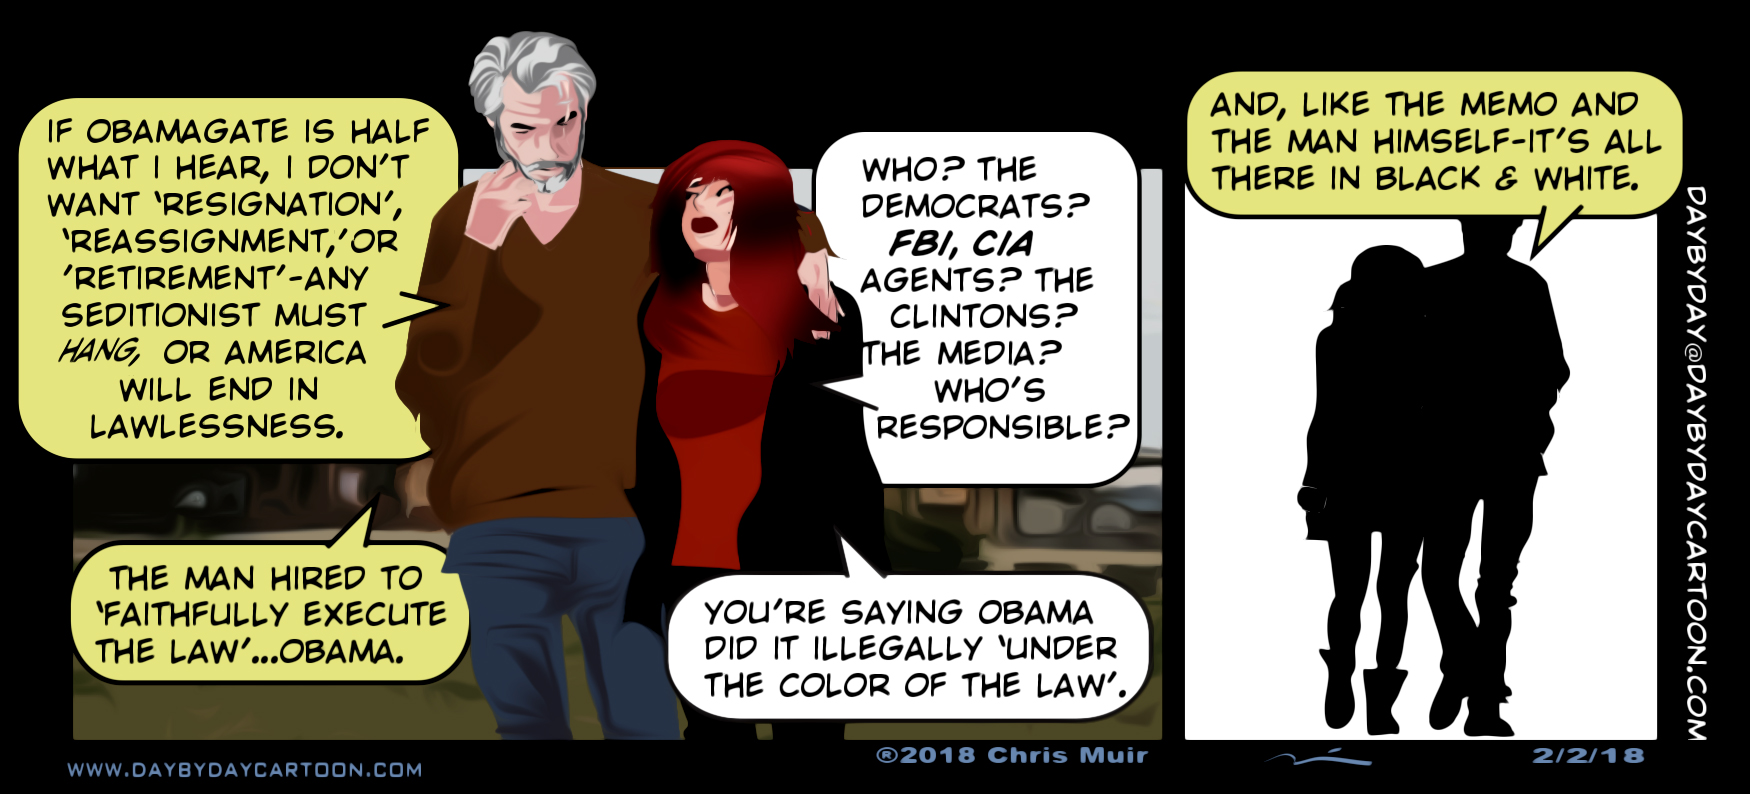 Under the Color of the Law. www.daybydaycartoon.com